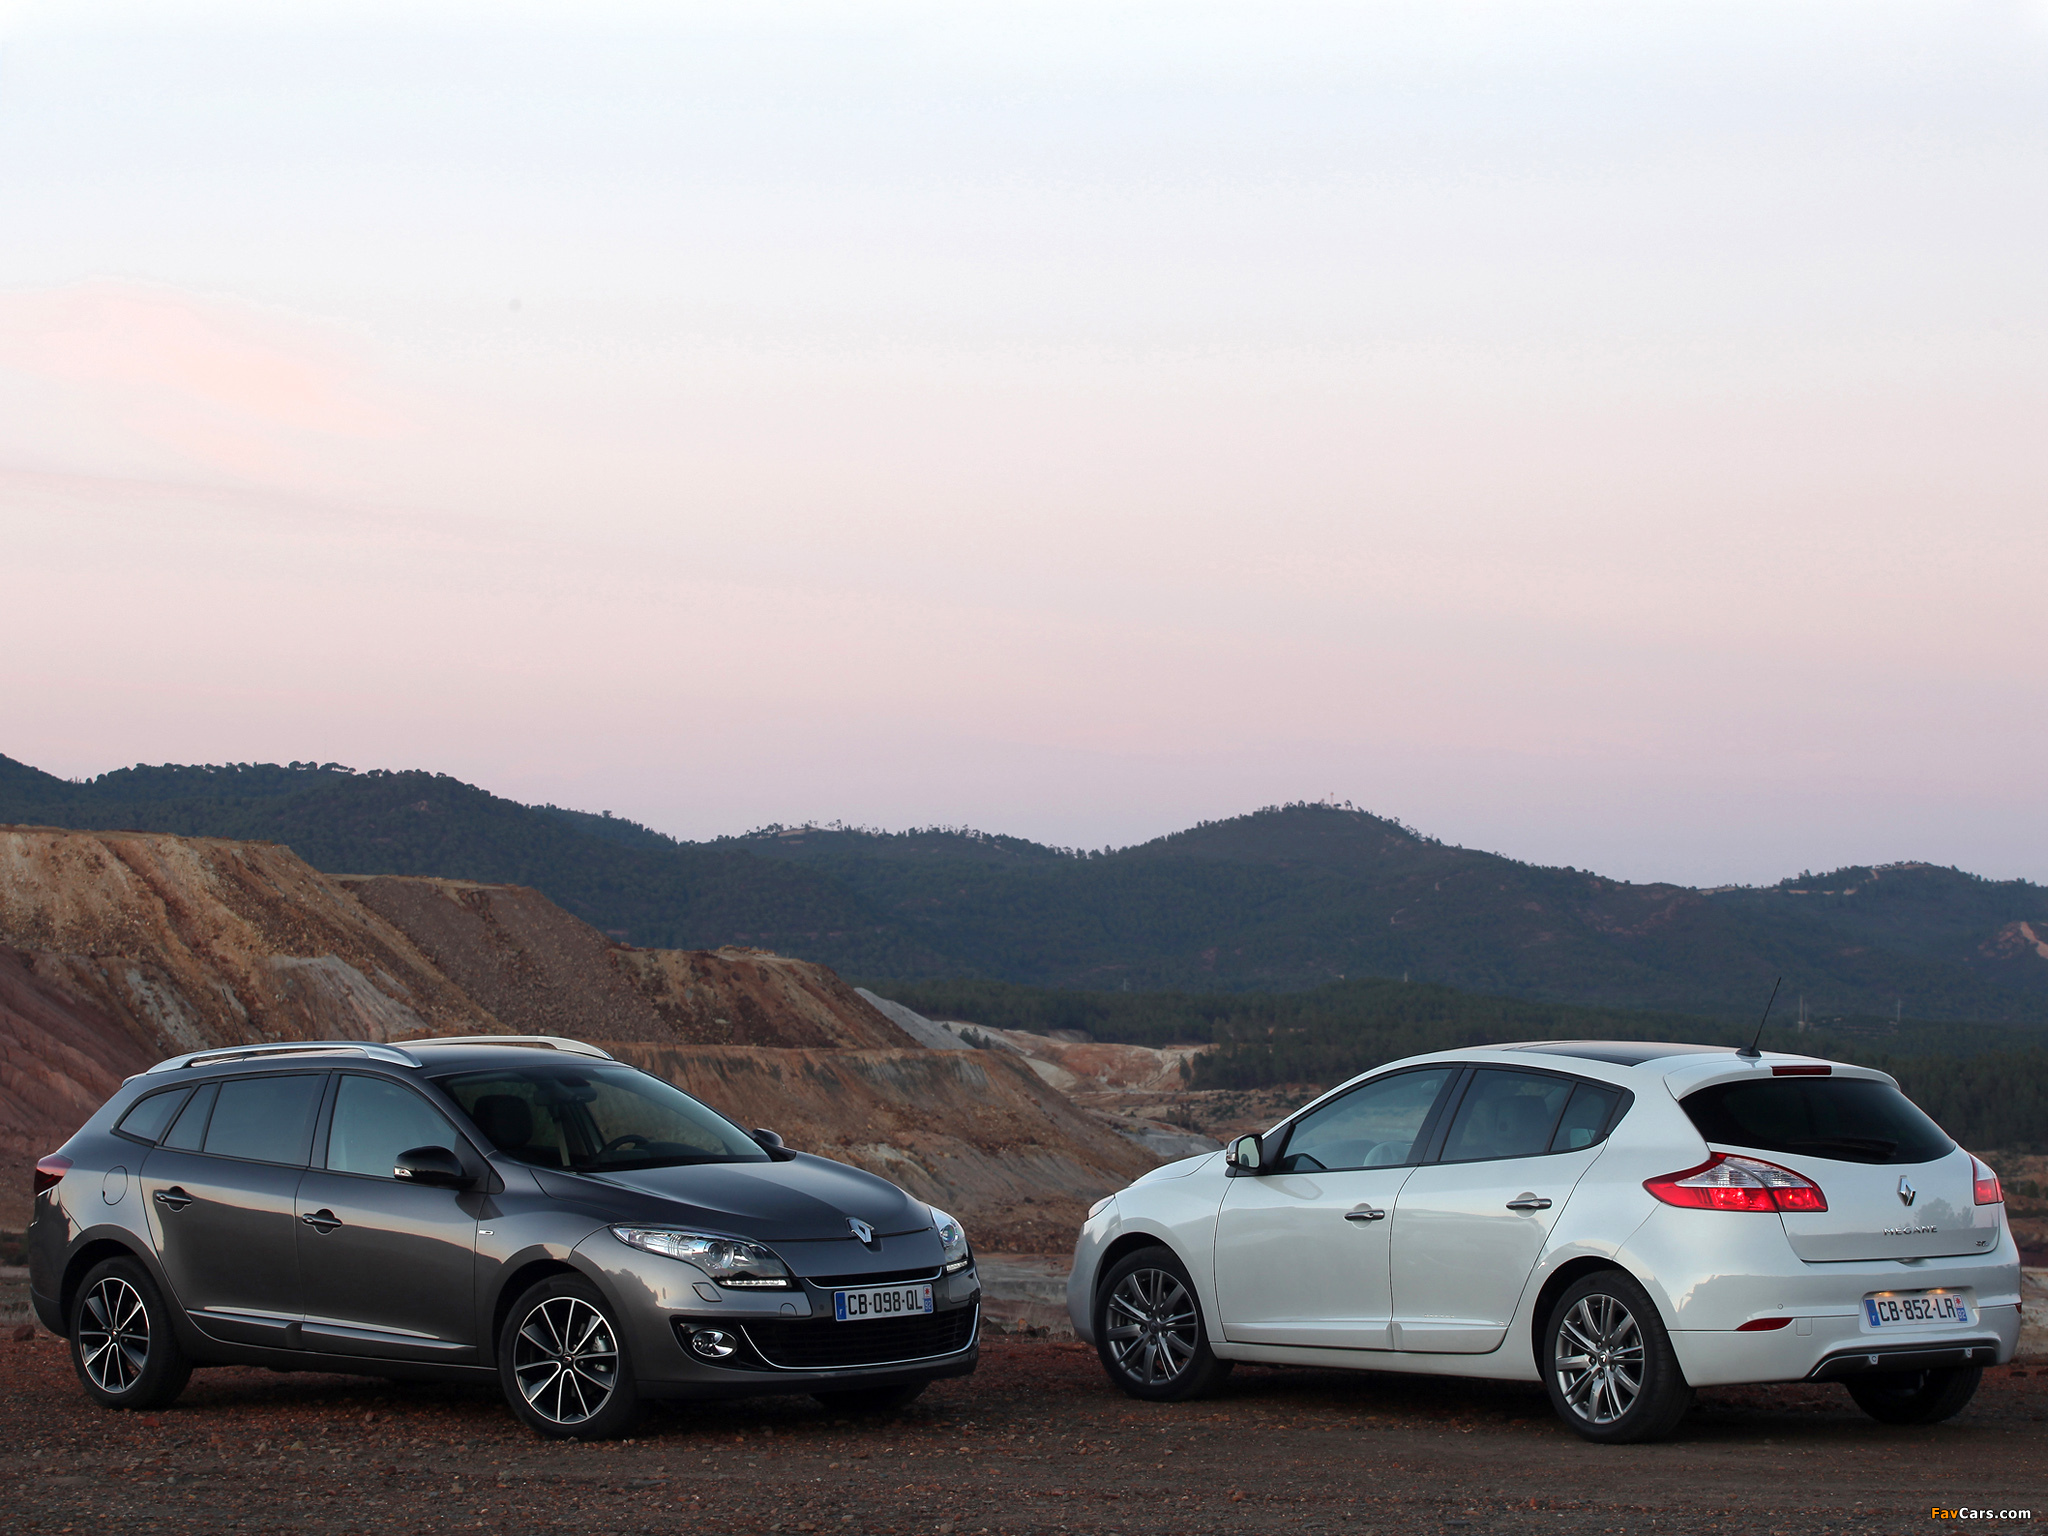 Pictures of Renault Megane (2048 x 1536)